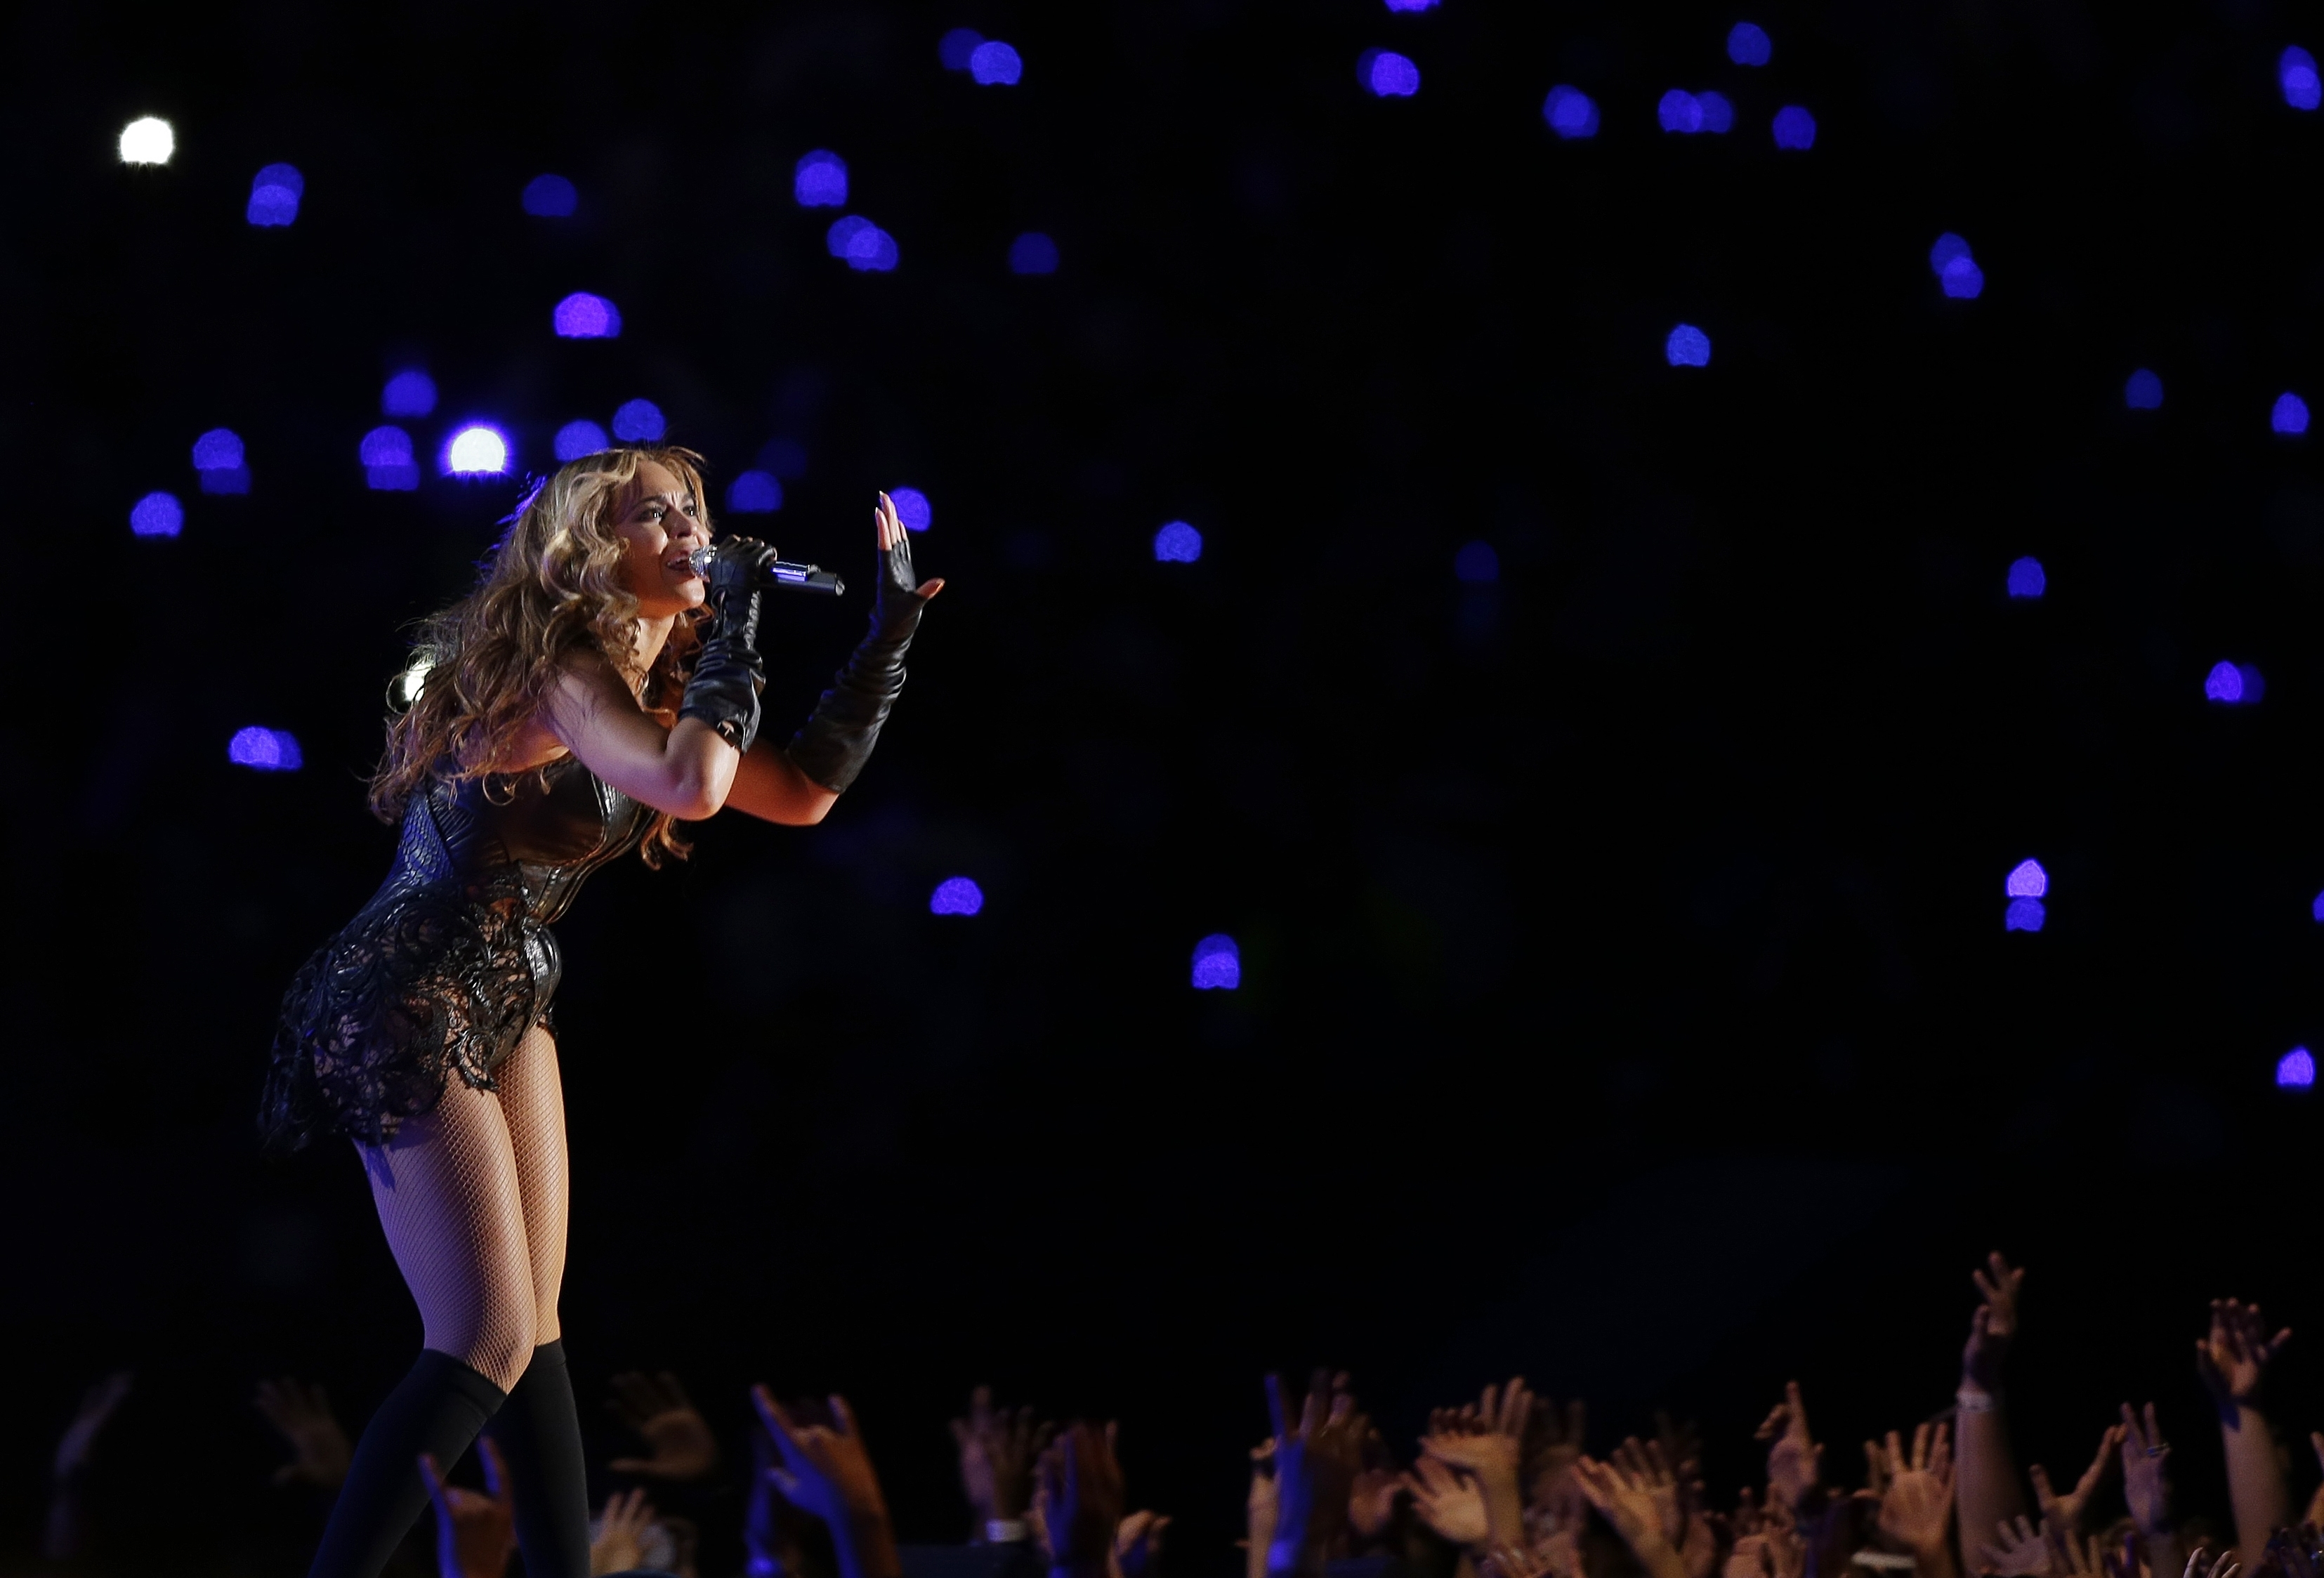 Super Bowl: Beyonce's rip off - Emirates 24|7